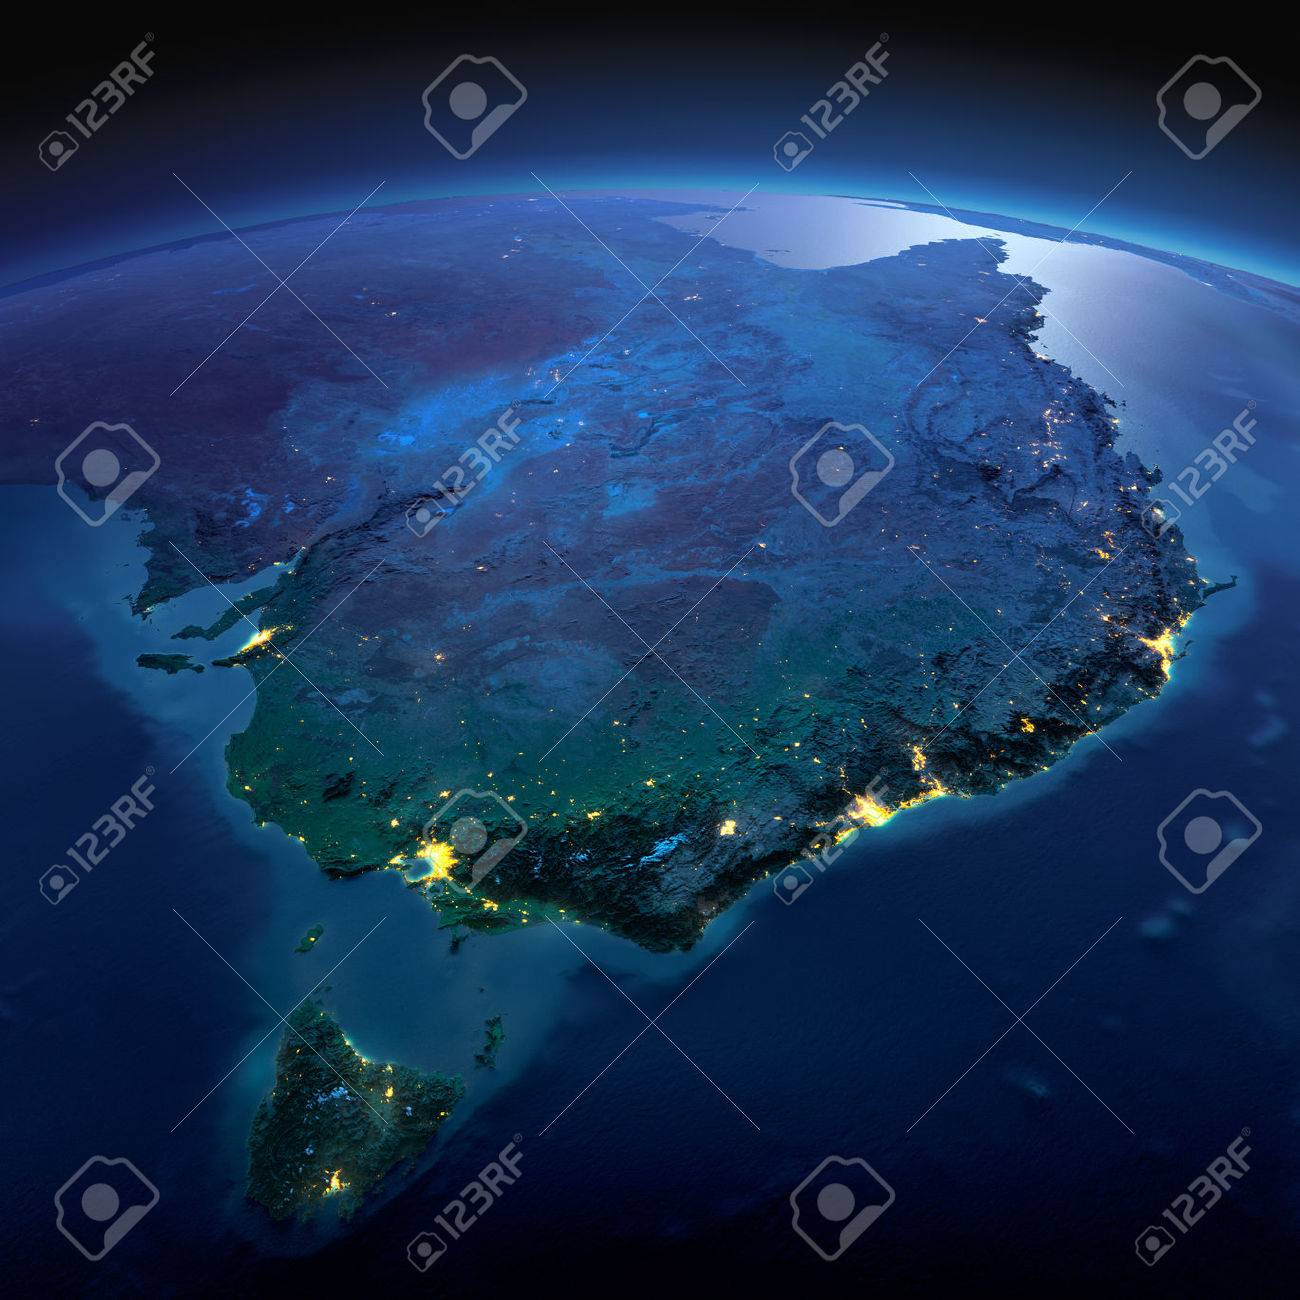 Night planet Earth with precise detailed relief and city lights illuminated by moonlight. Australia and Tasmania. Elements of this image furnished by NASA - 50372686